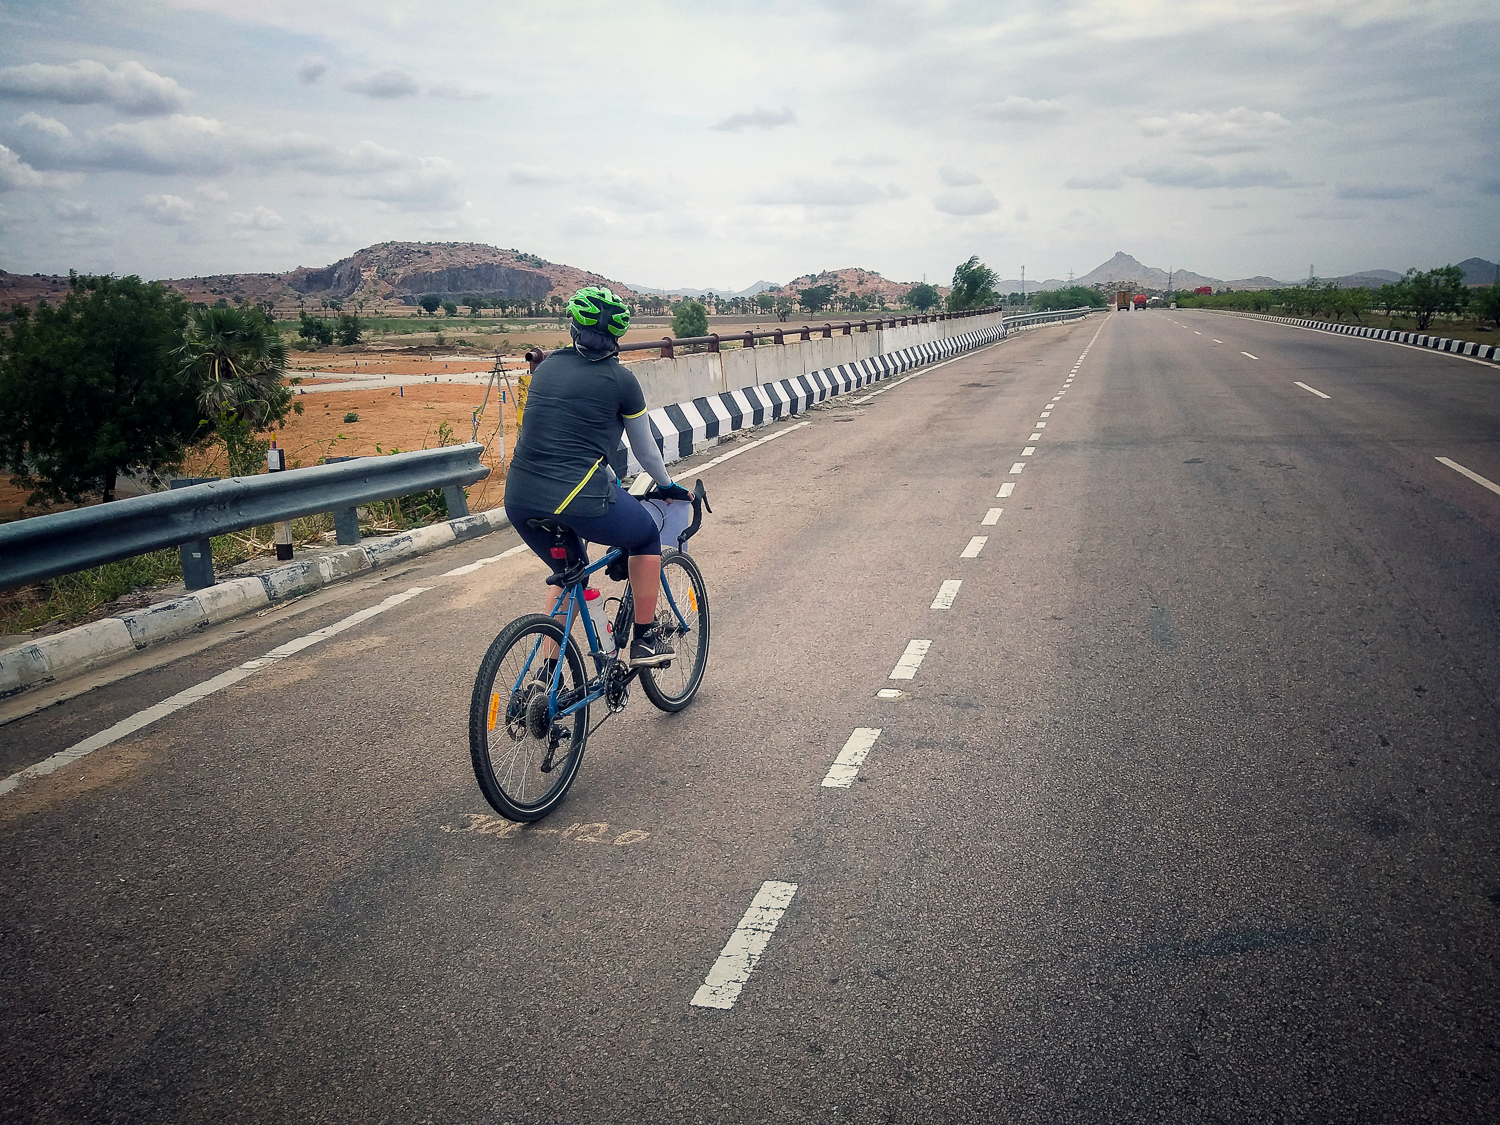 Cycling on Tamil Nadu highways